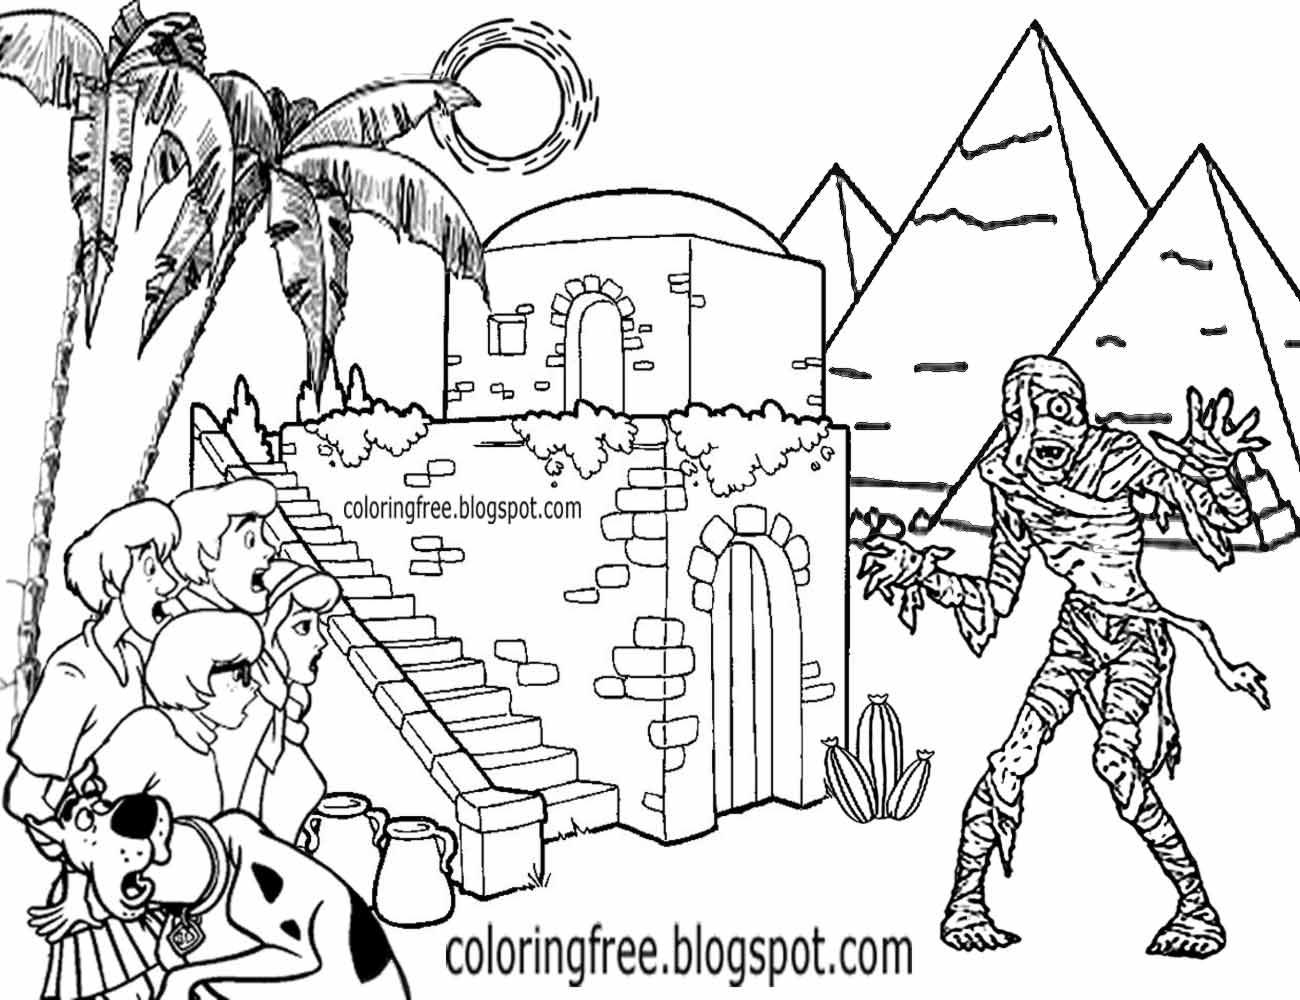 Geography of egypt coloring pages | 1000x1300